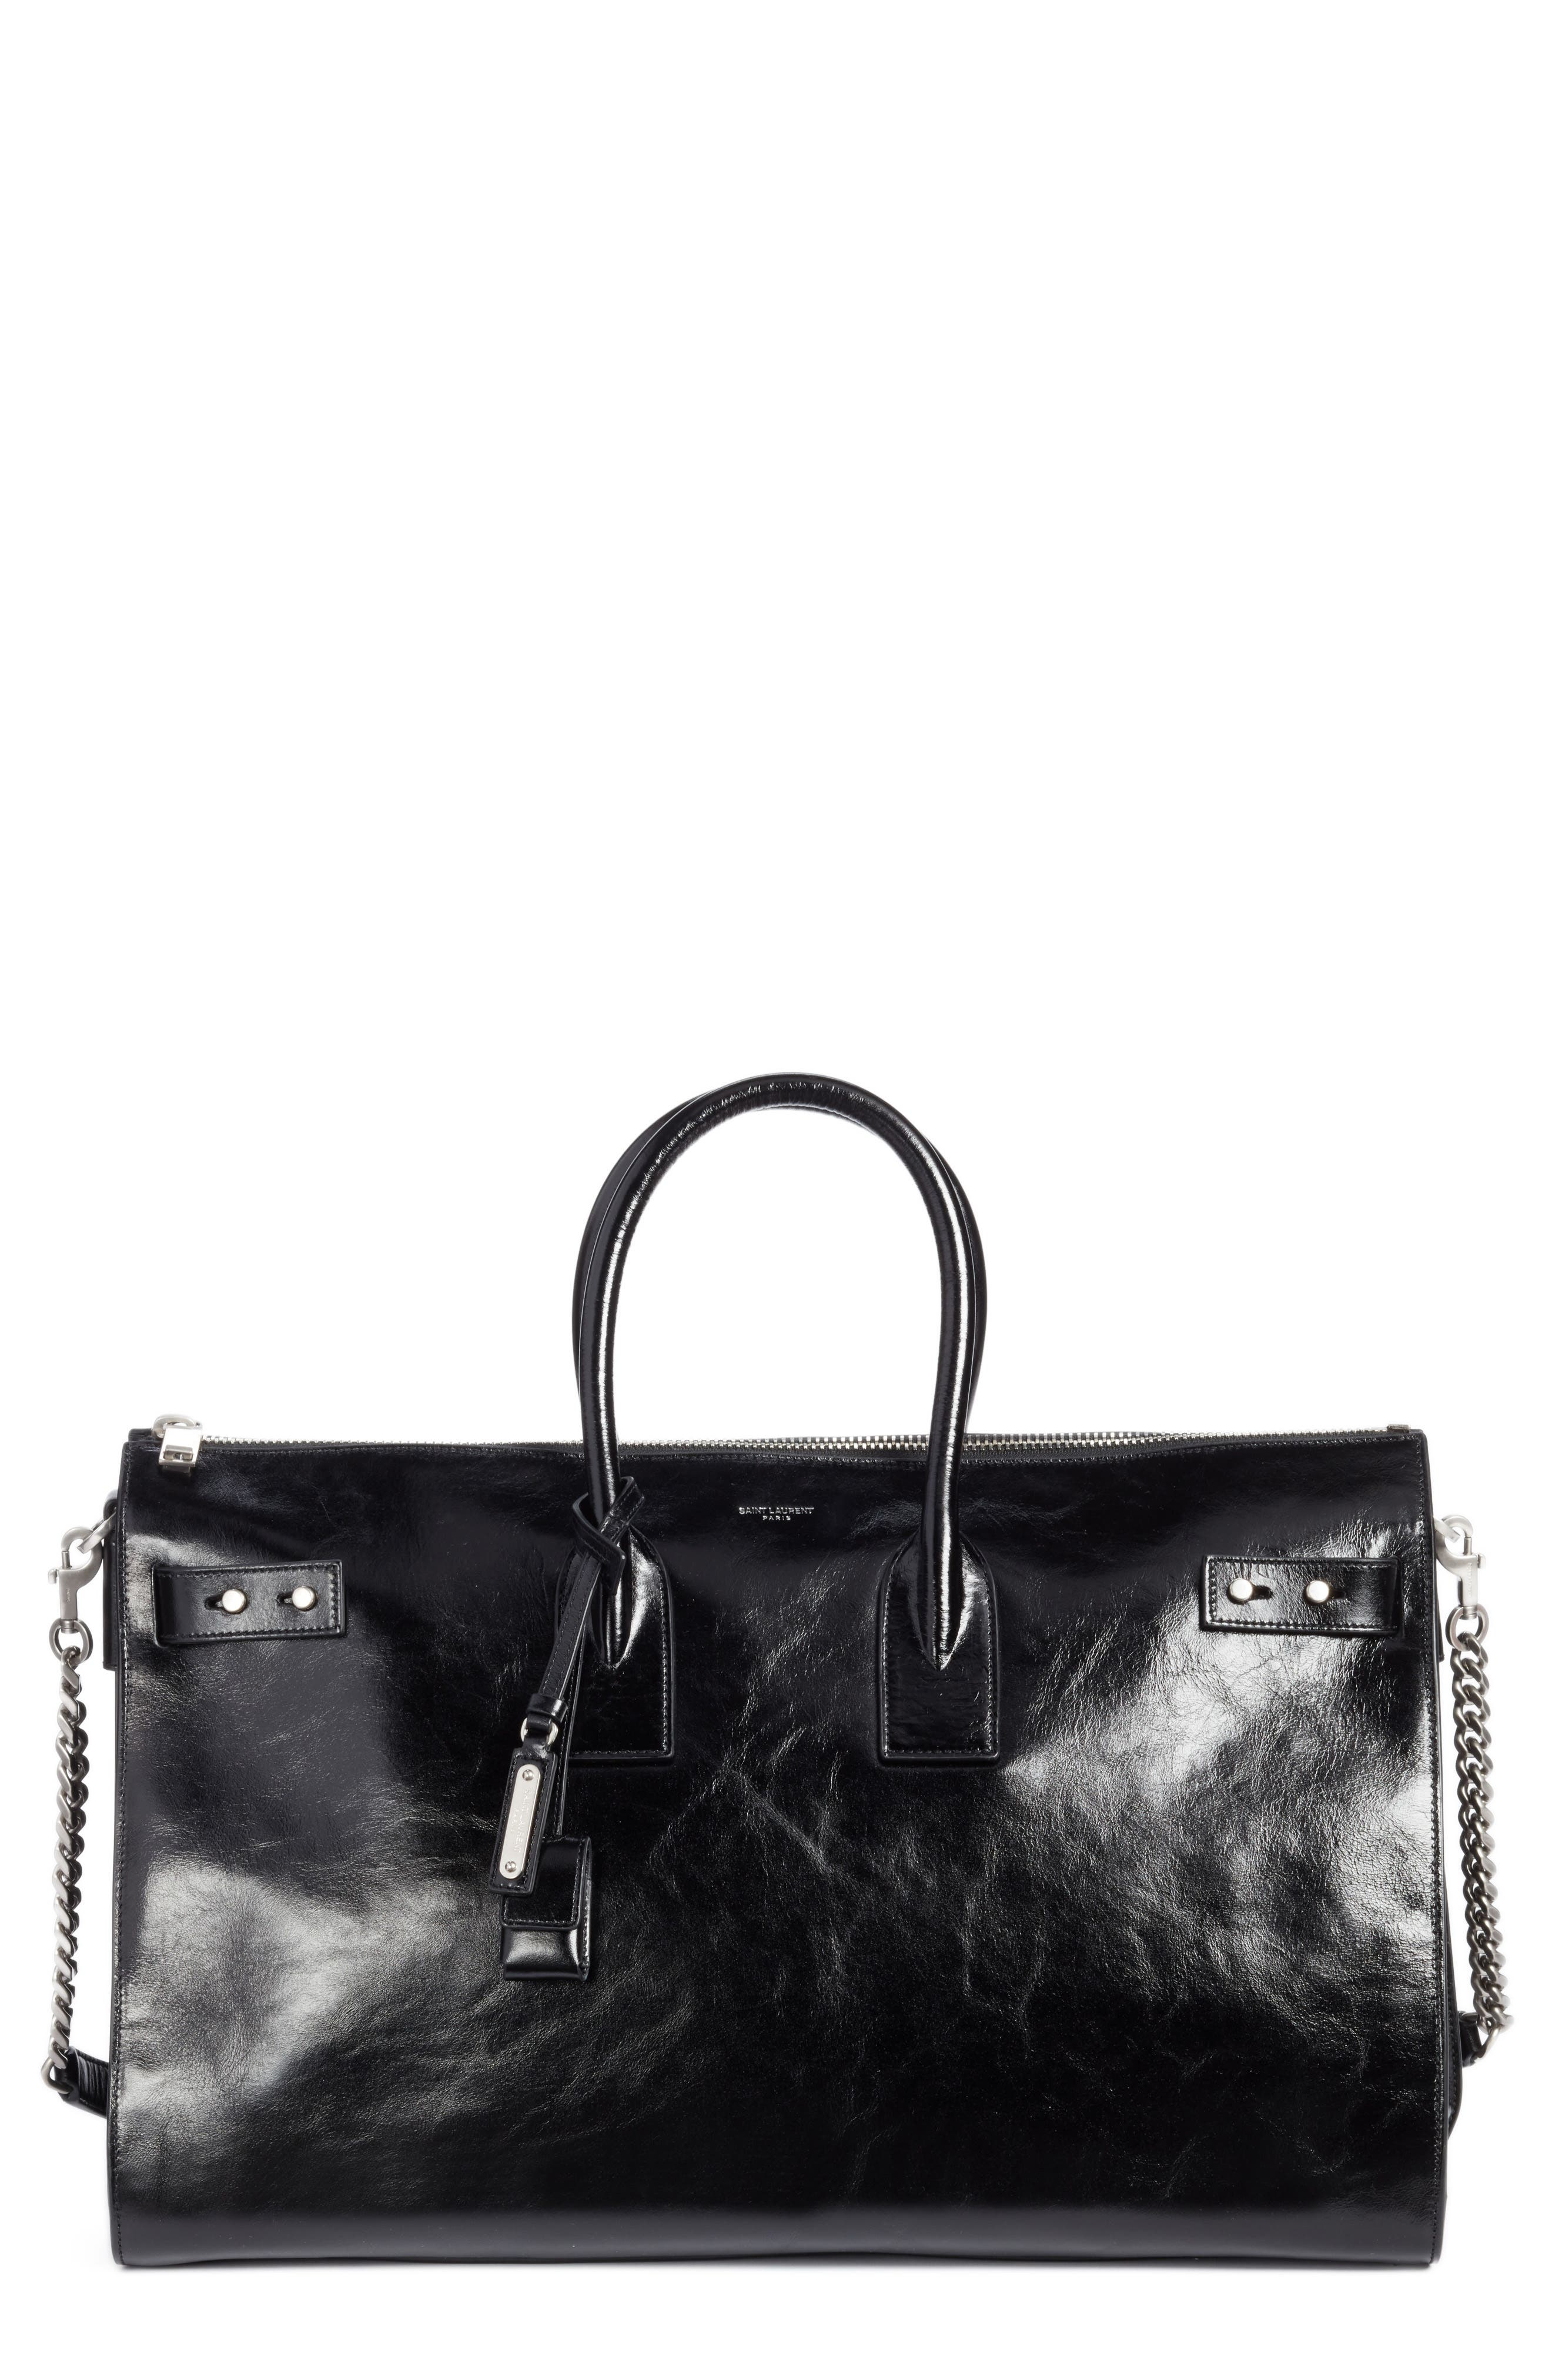 Main Image - Saint Laurent Sac de Jour Glacé Moroder Leather Duffel